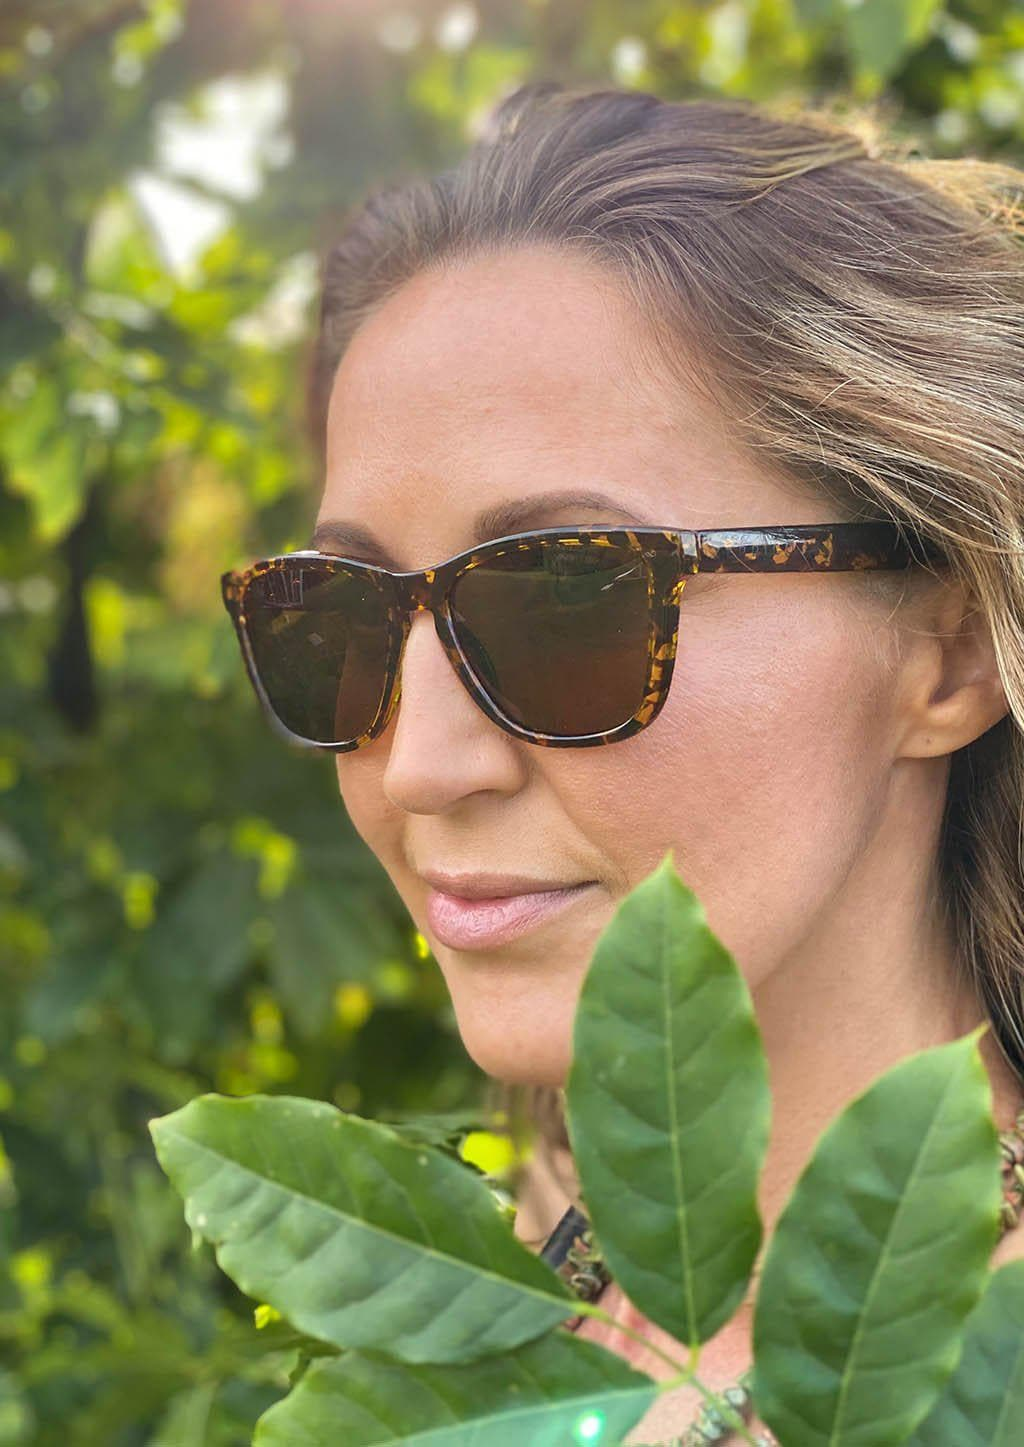 Our Mood V2 is an improved version of our last wayfarers. Plastic body for great quality and durabilty. This is Chic with tortoise frame and brown lenses. On Swedish female mode.